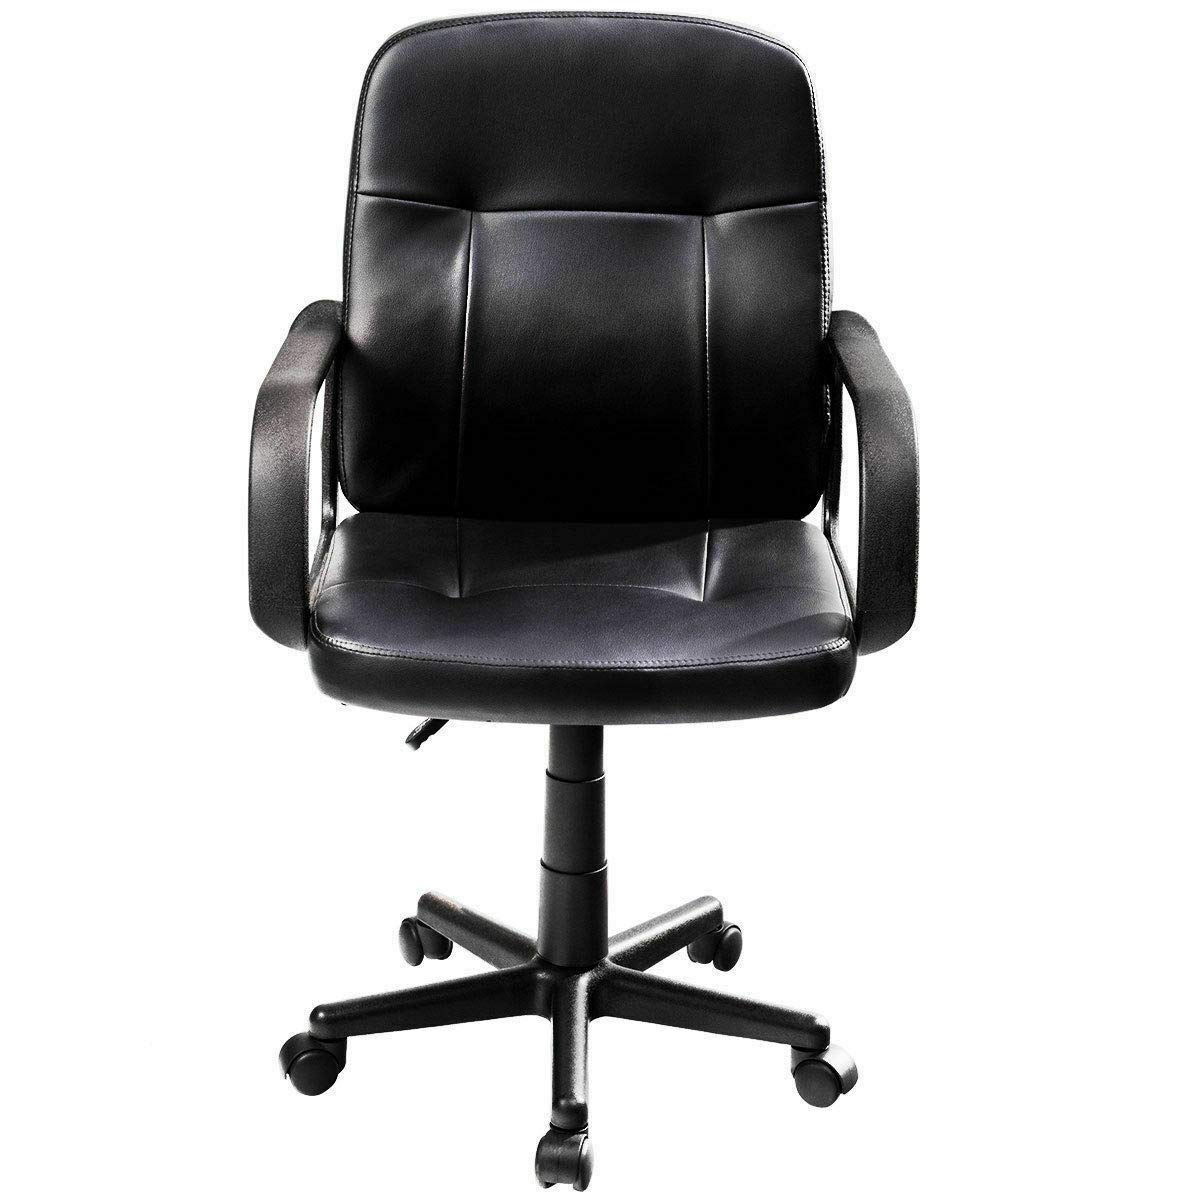 Seleq Compact Black PU Leather Desk Chair for Home Office by Seleq (Image #5)